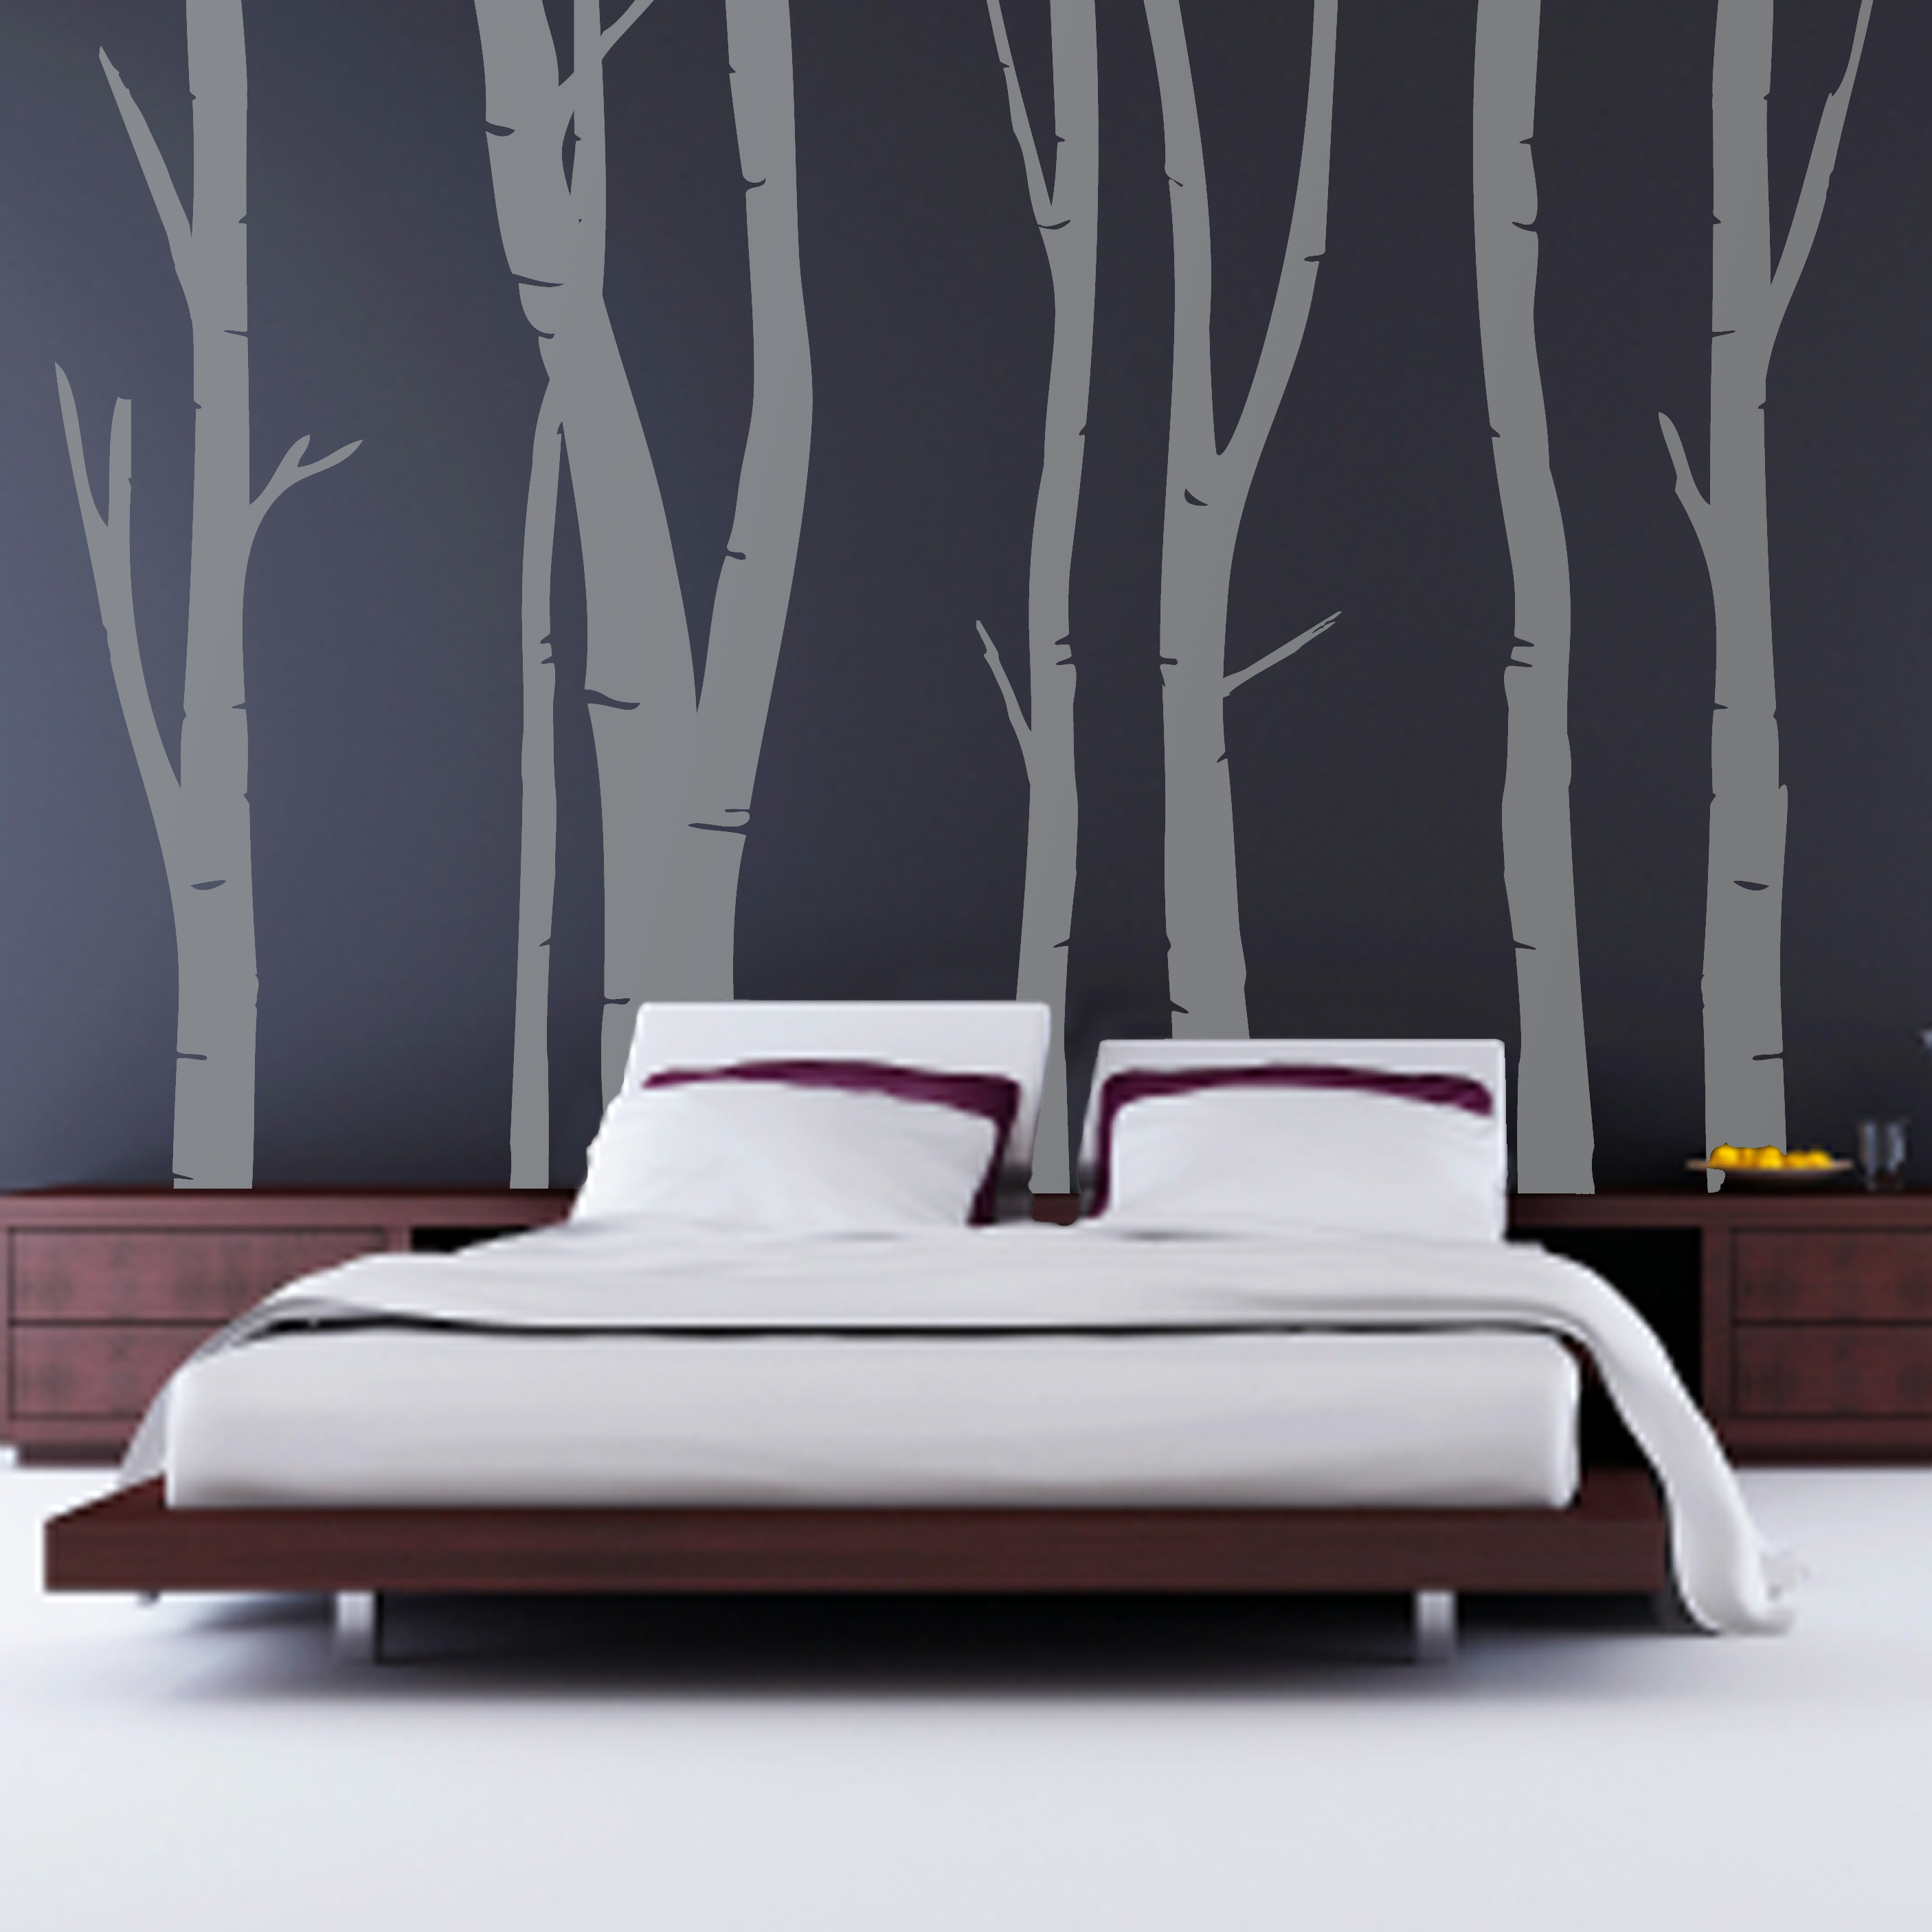 Ben saunders and silvia cseh are making walls talk - Wall designs bedroom ...